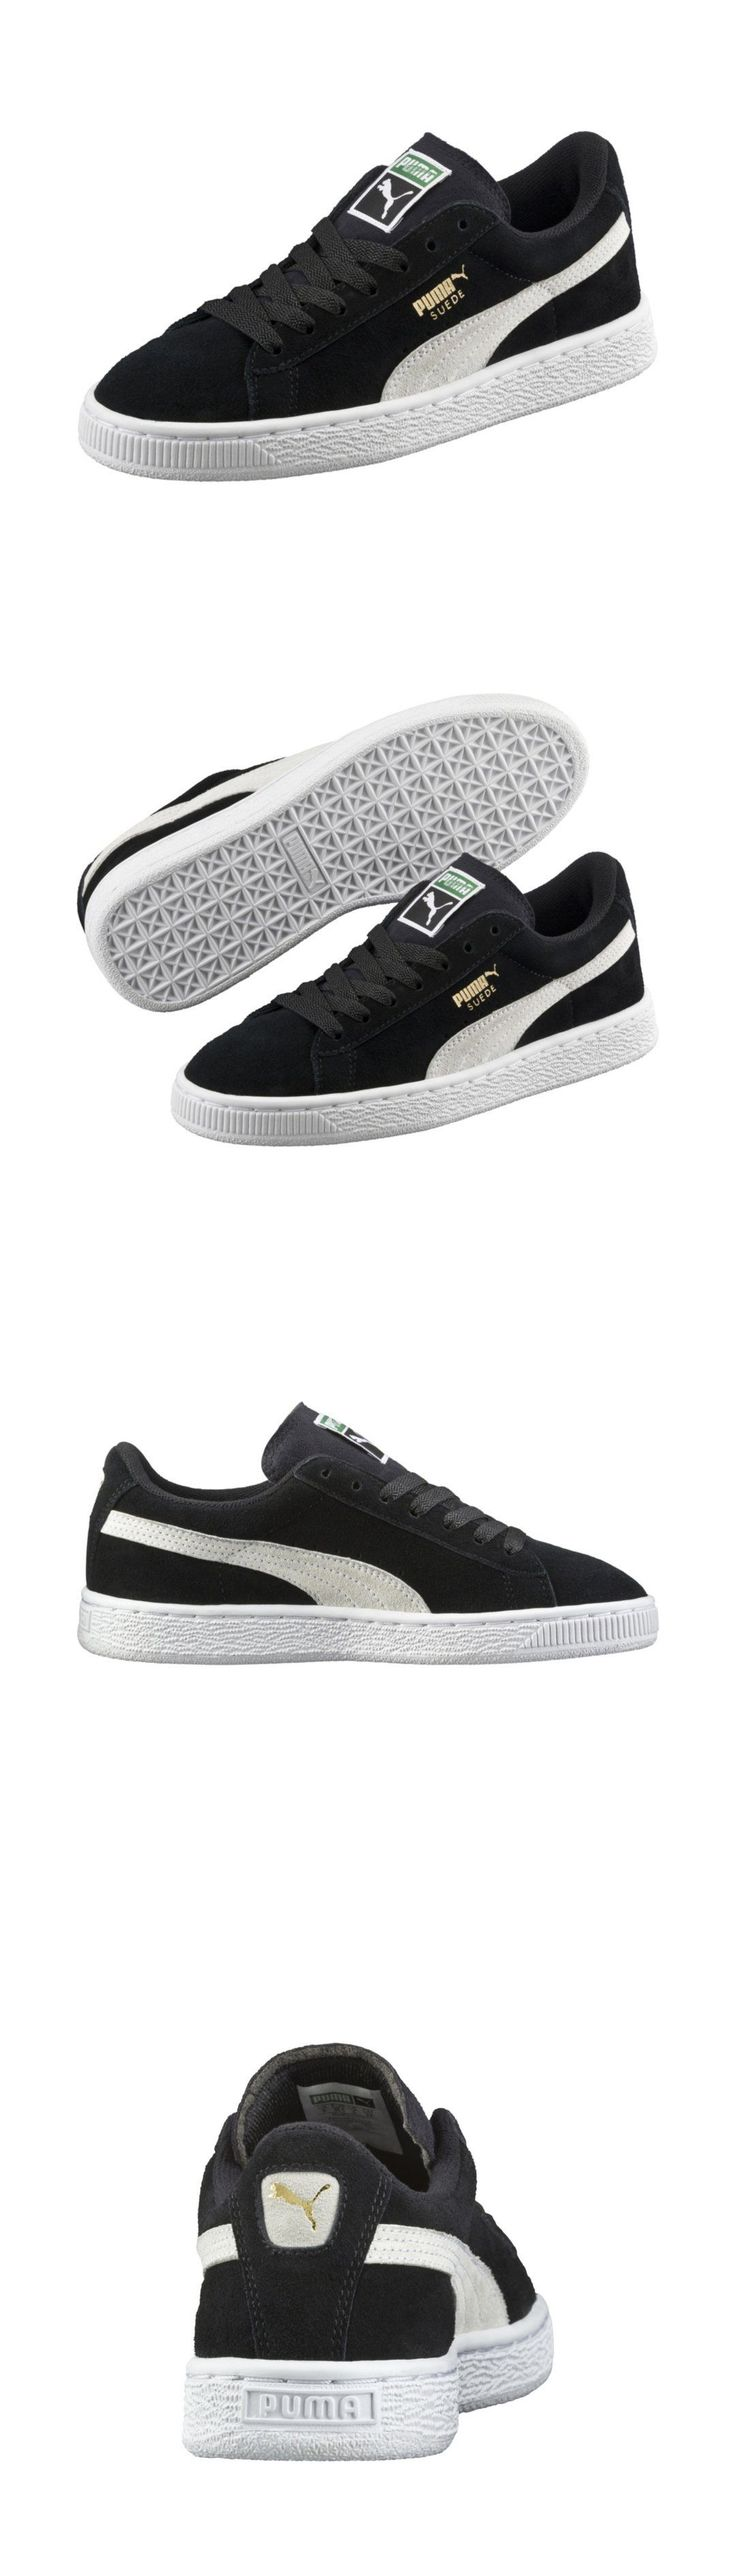 Youth 158954: Kids Puma Suede Jr Black And White 355110-01 Gs Grade School Junior Classic -> BUY IT NOW ONLY: $45 on eBay!